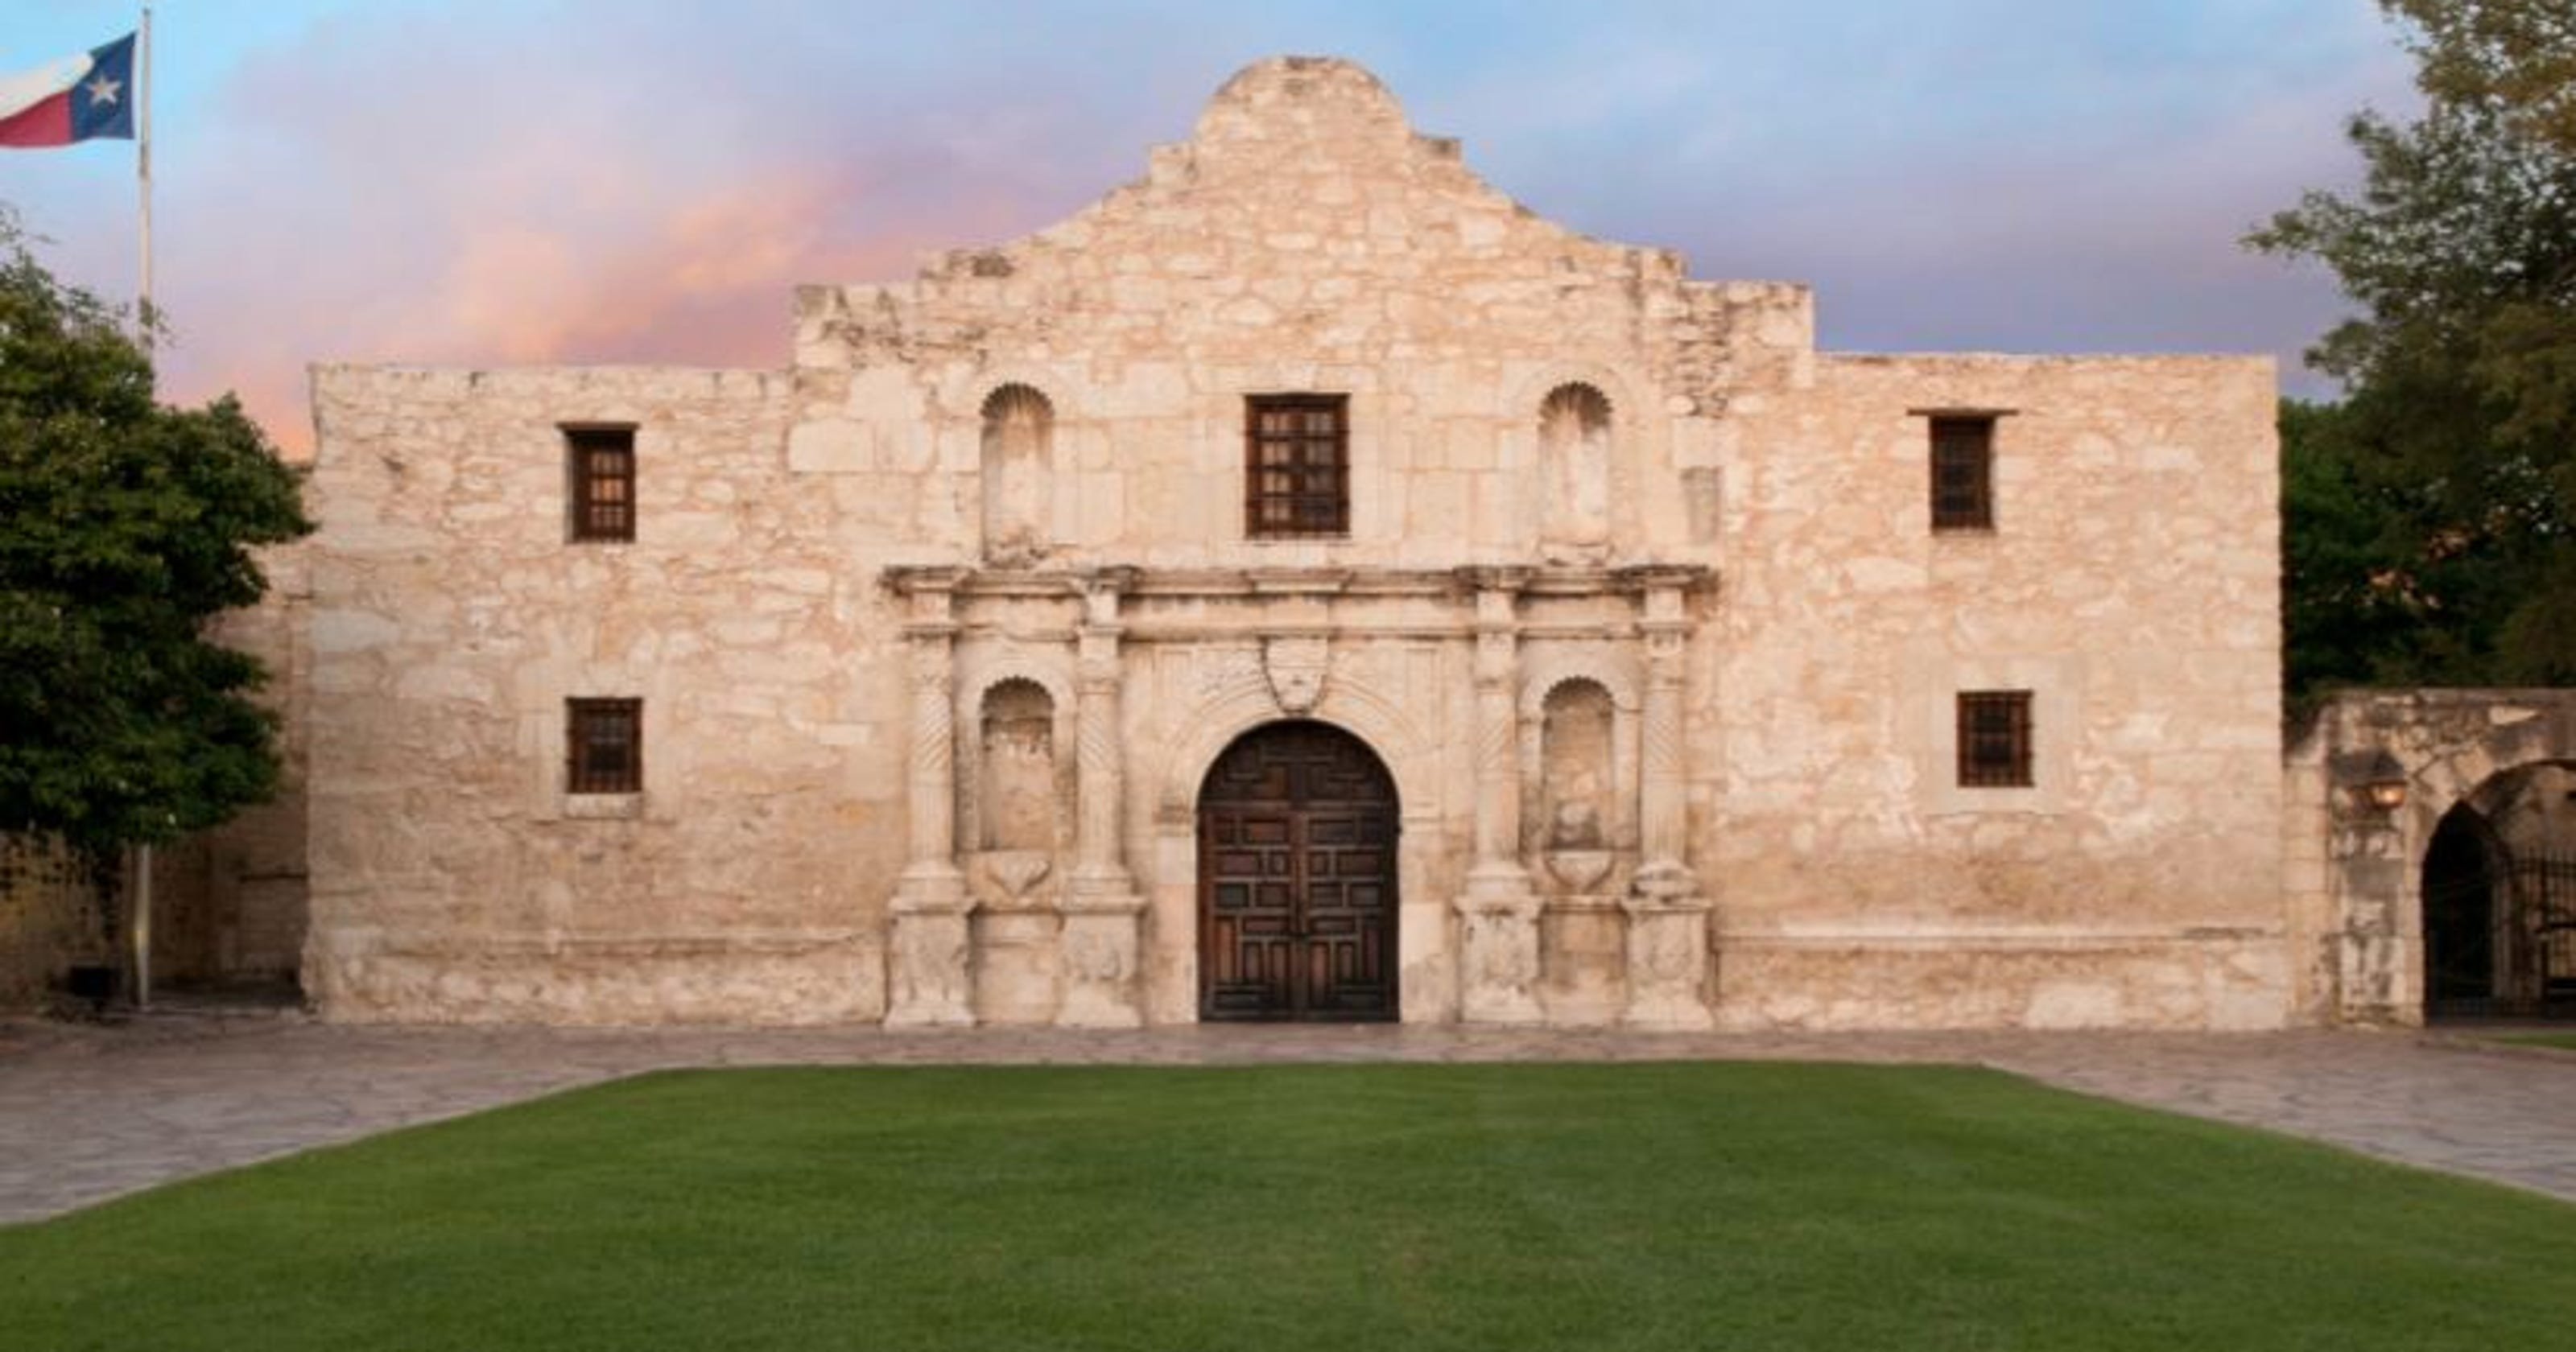 alamo work from home 450m alamo plan would triple size of plaza at historic site 8131